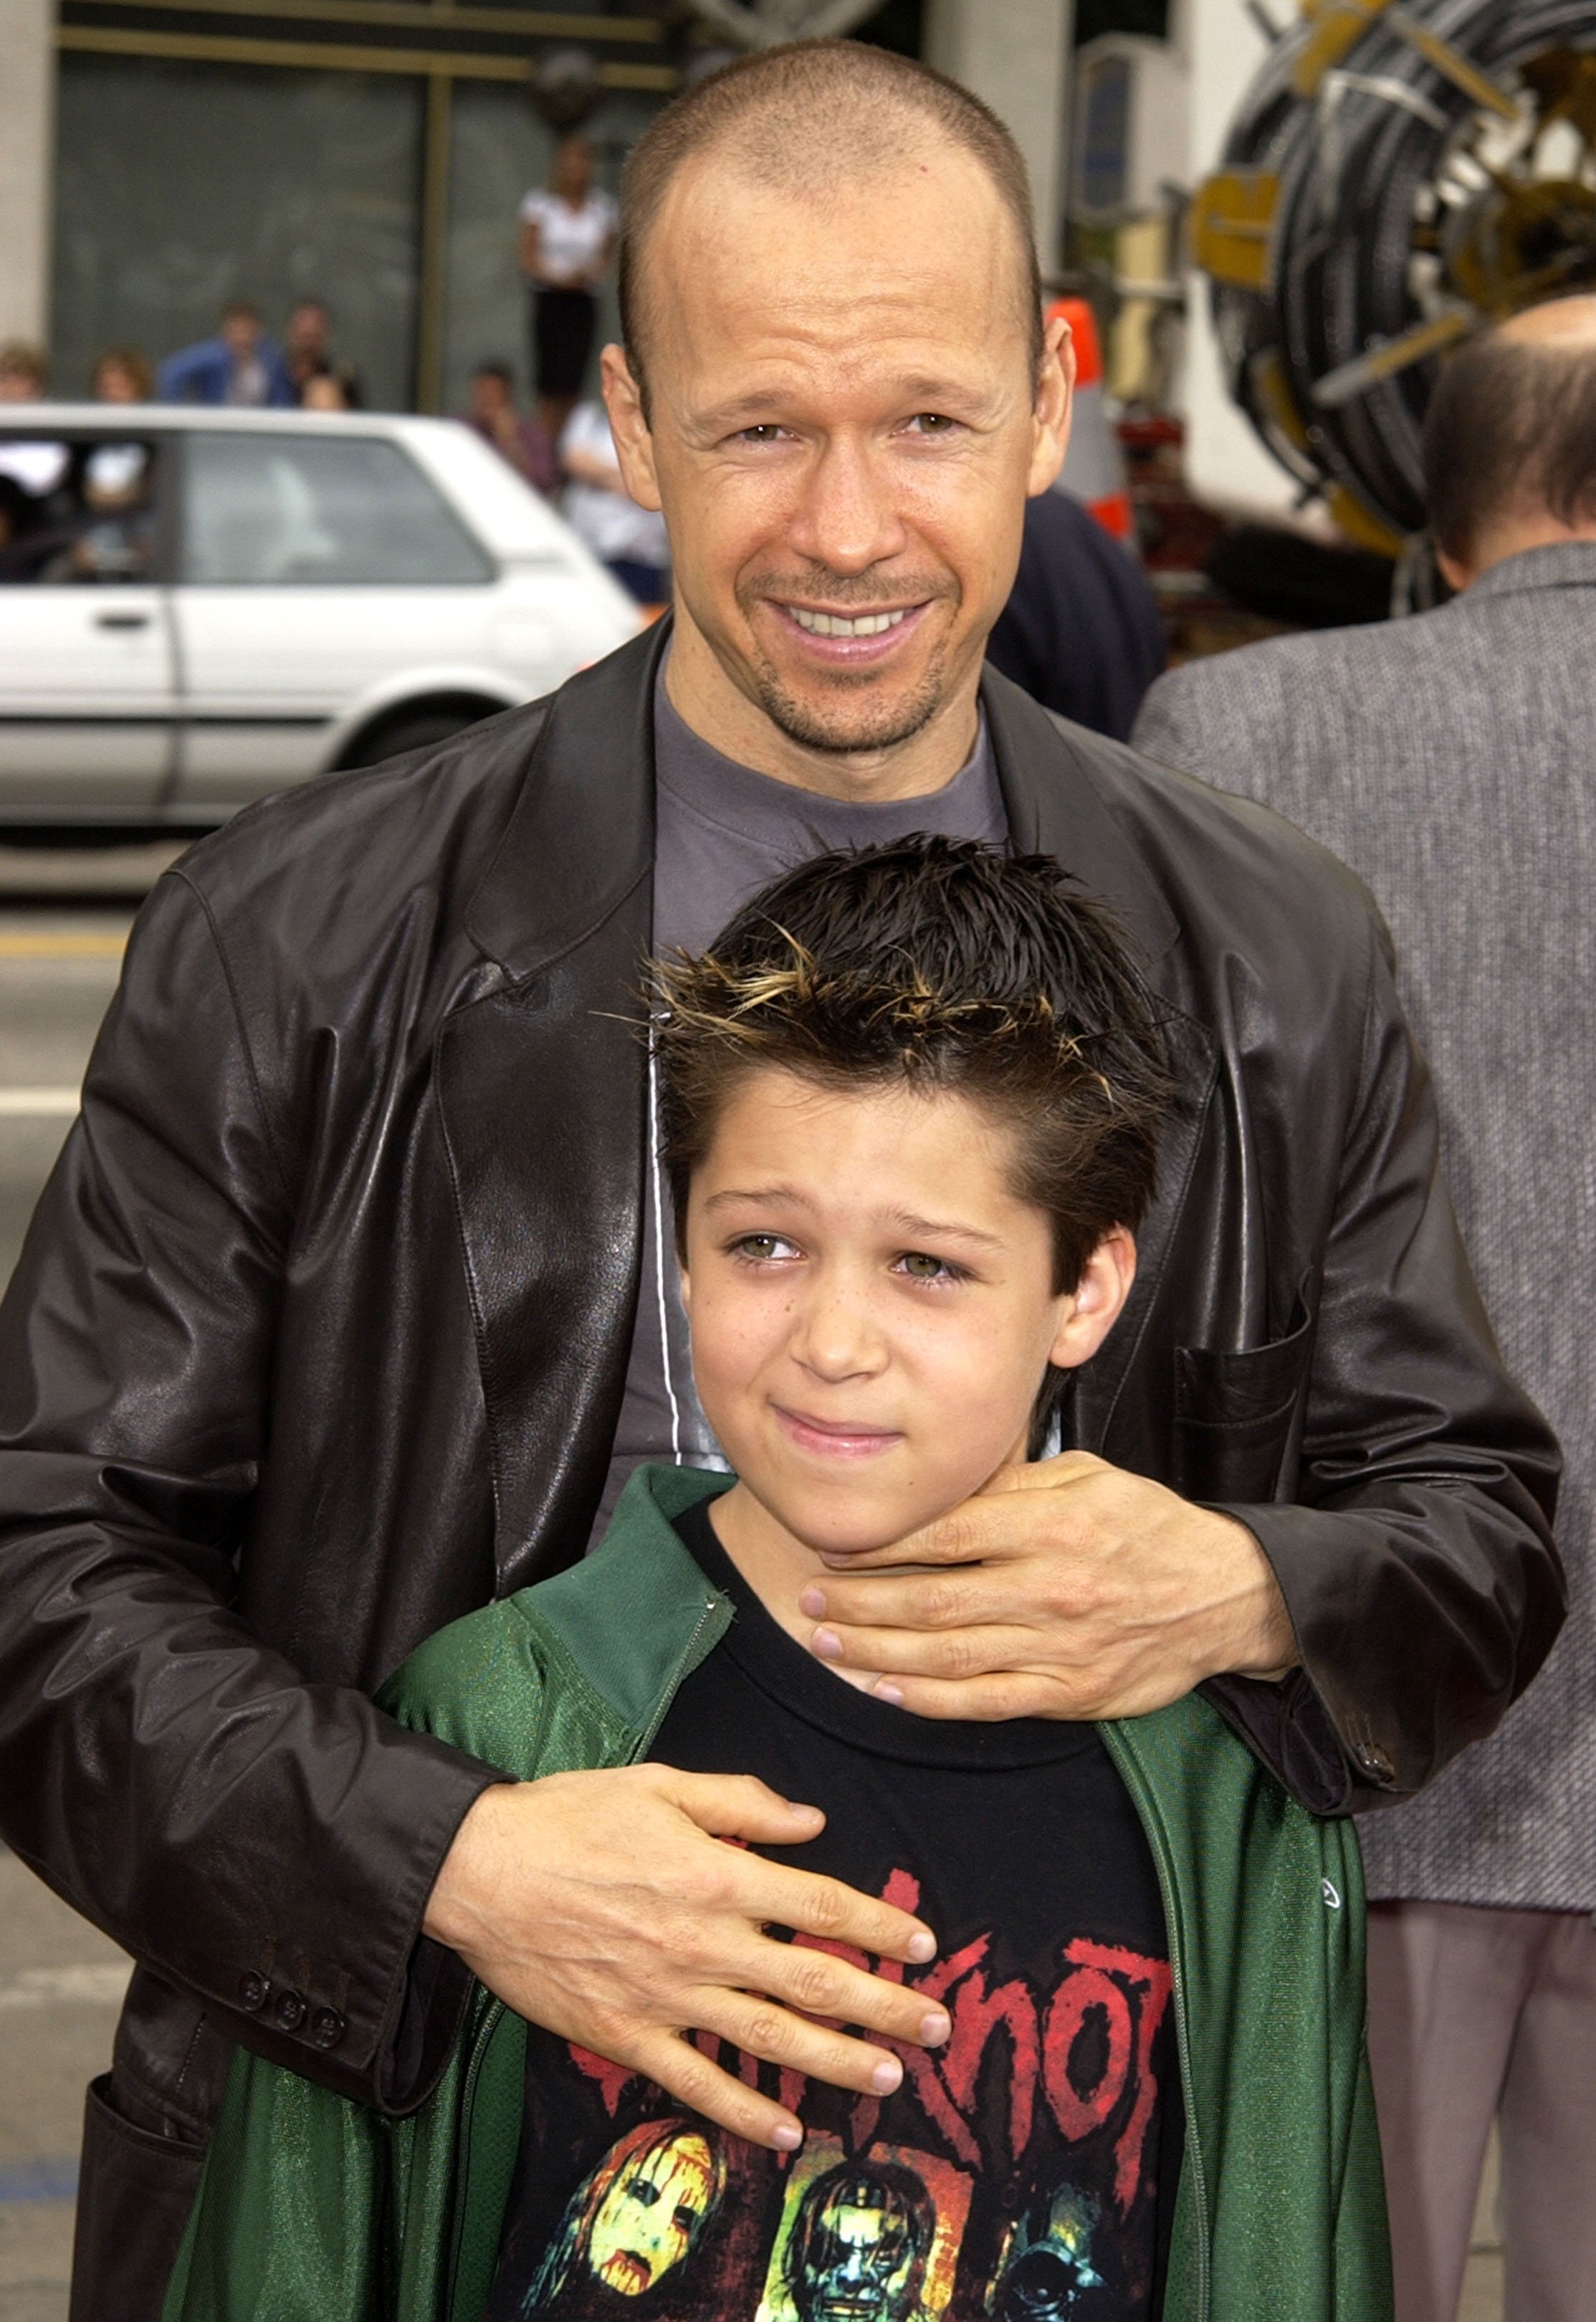 Donnie Wahlberg & son Xavier at an event | Photo: Getty Images